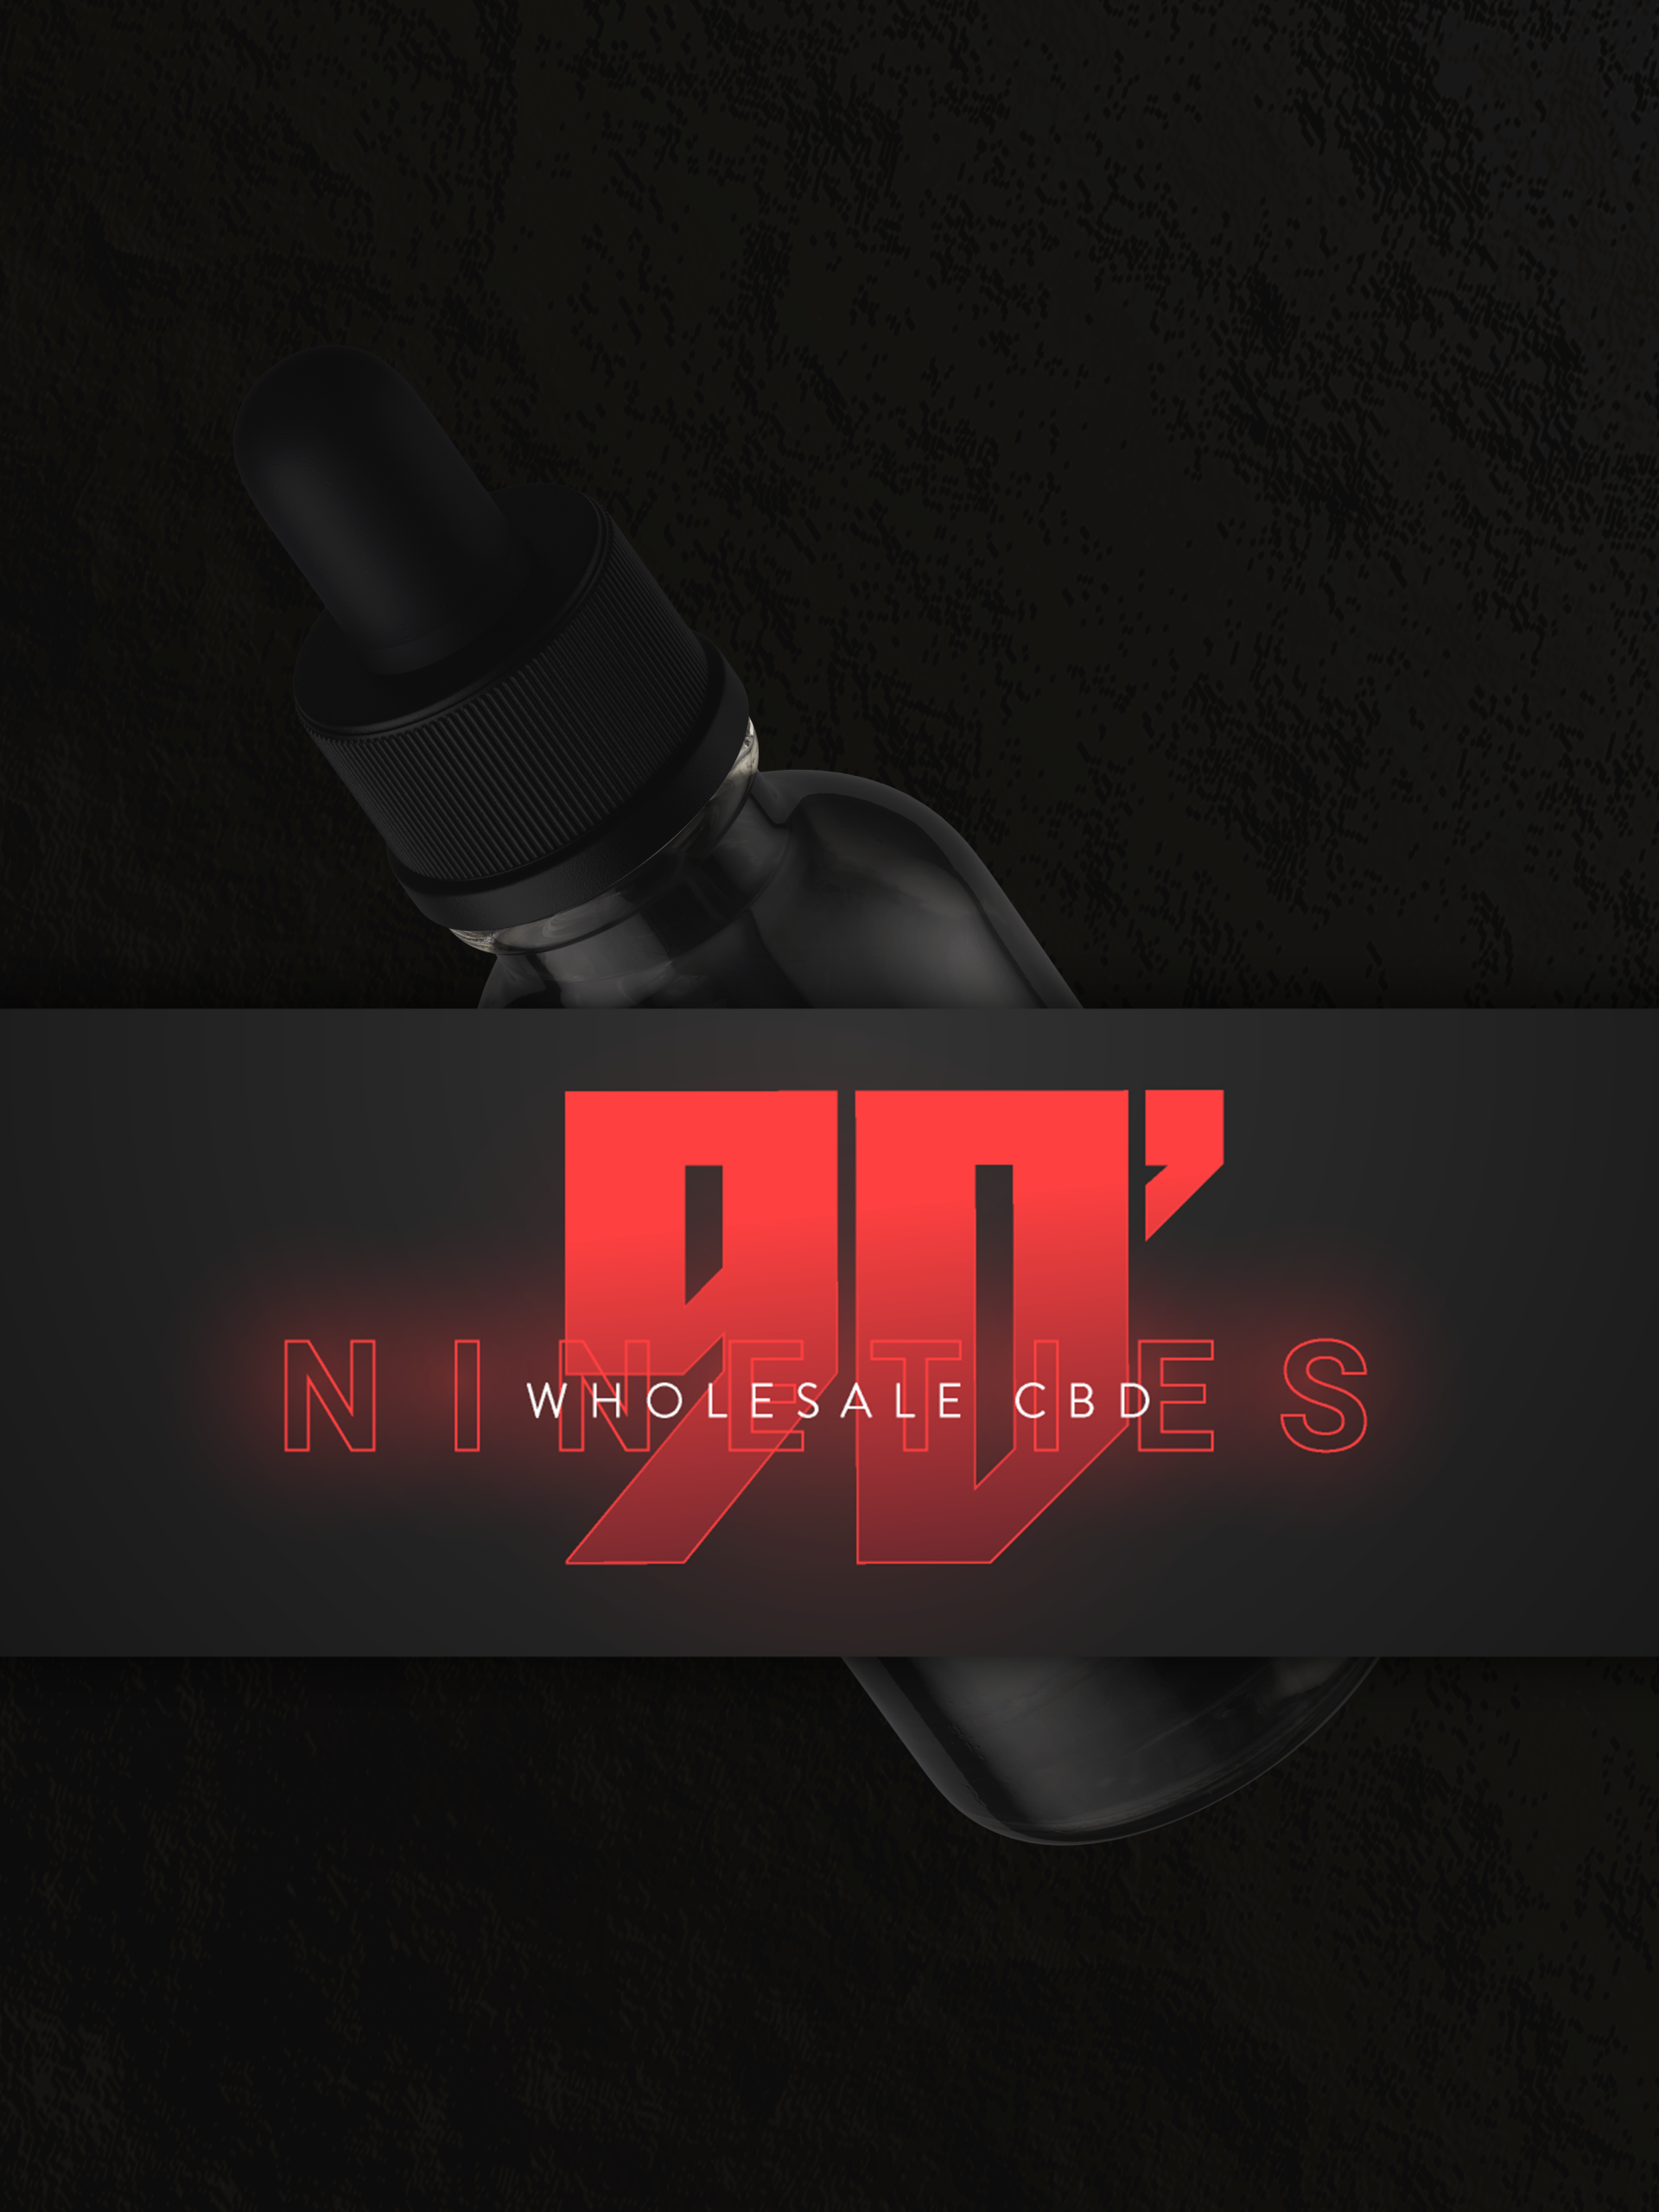 wit group branding and logo design project for 90's cbd